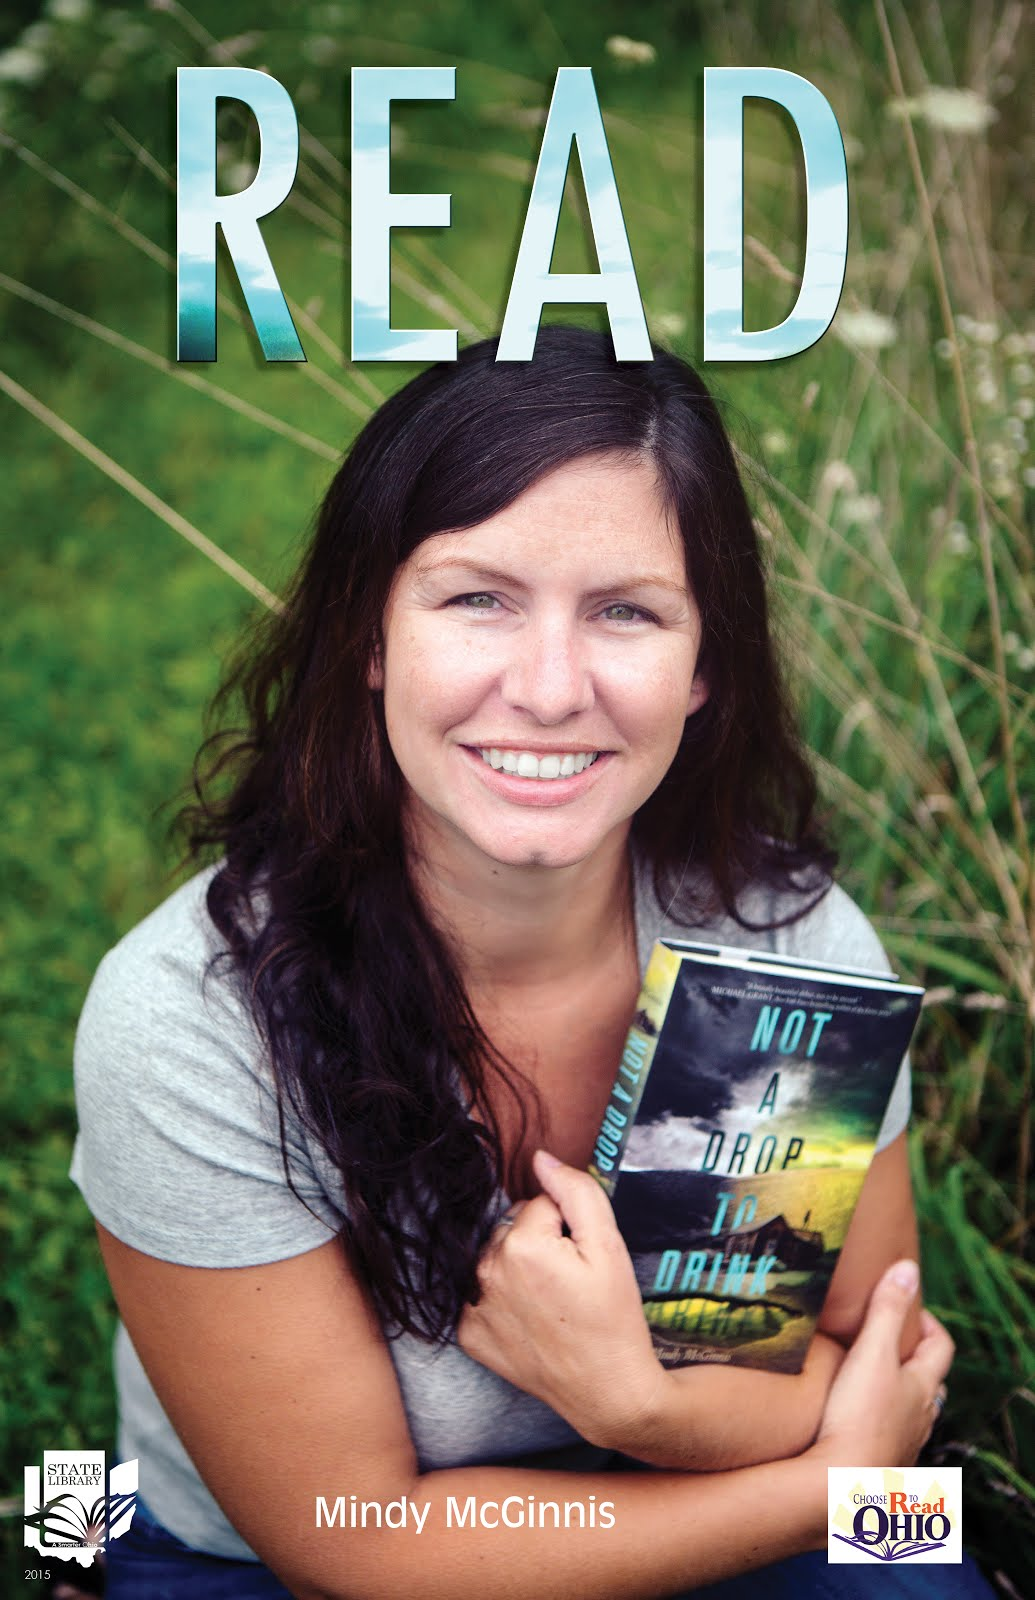 Author Mindy McGinnis